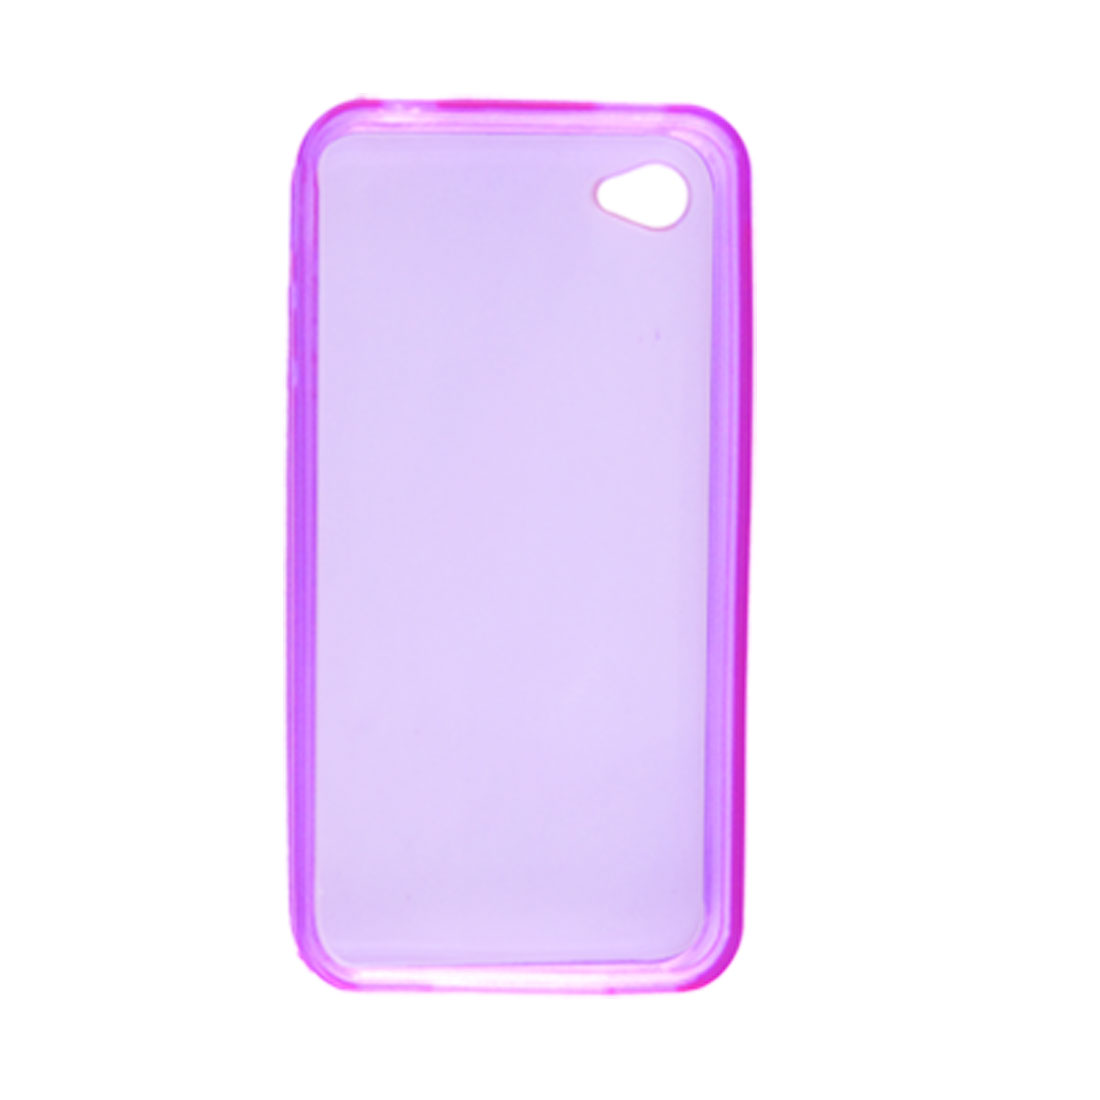 Clear Purple Soft Plastic Skin Back Case Protector for Apple iPhone 4 4G